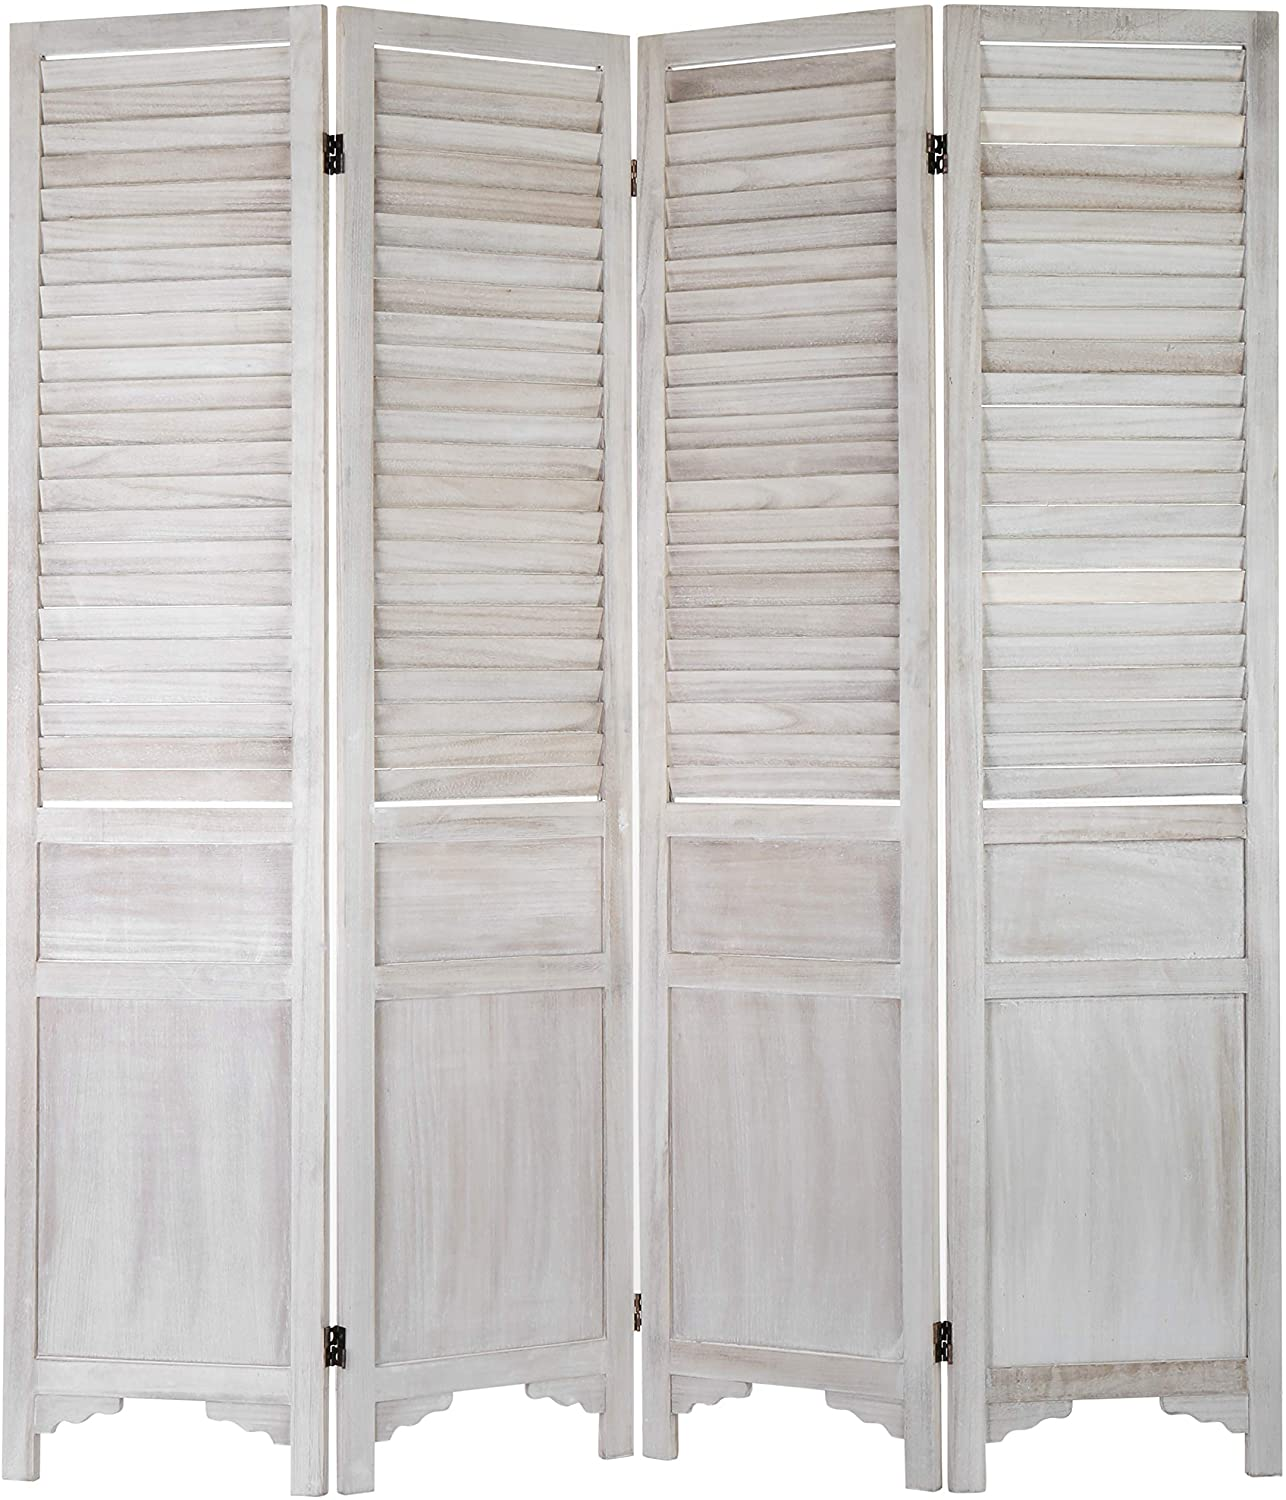 MyGift 4-Panel Vintage White Popular brand in the world Wood New sales Divider Room Screen Louvered w